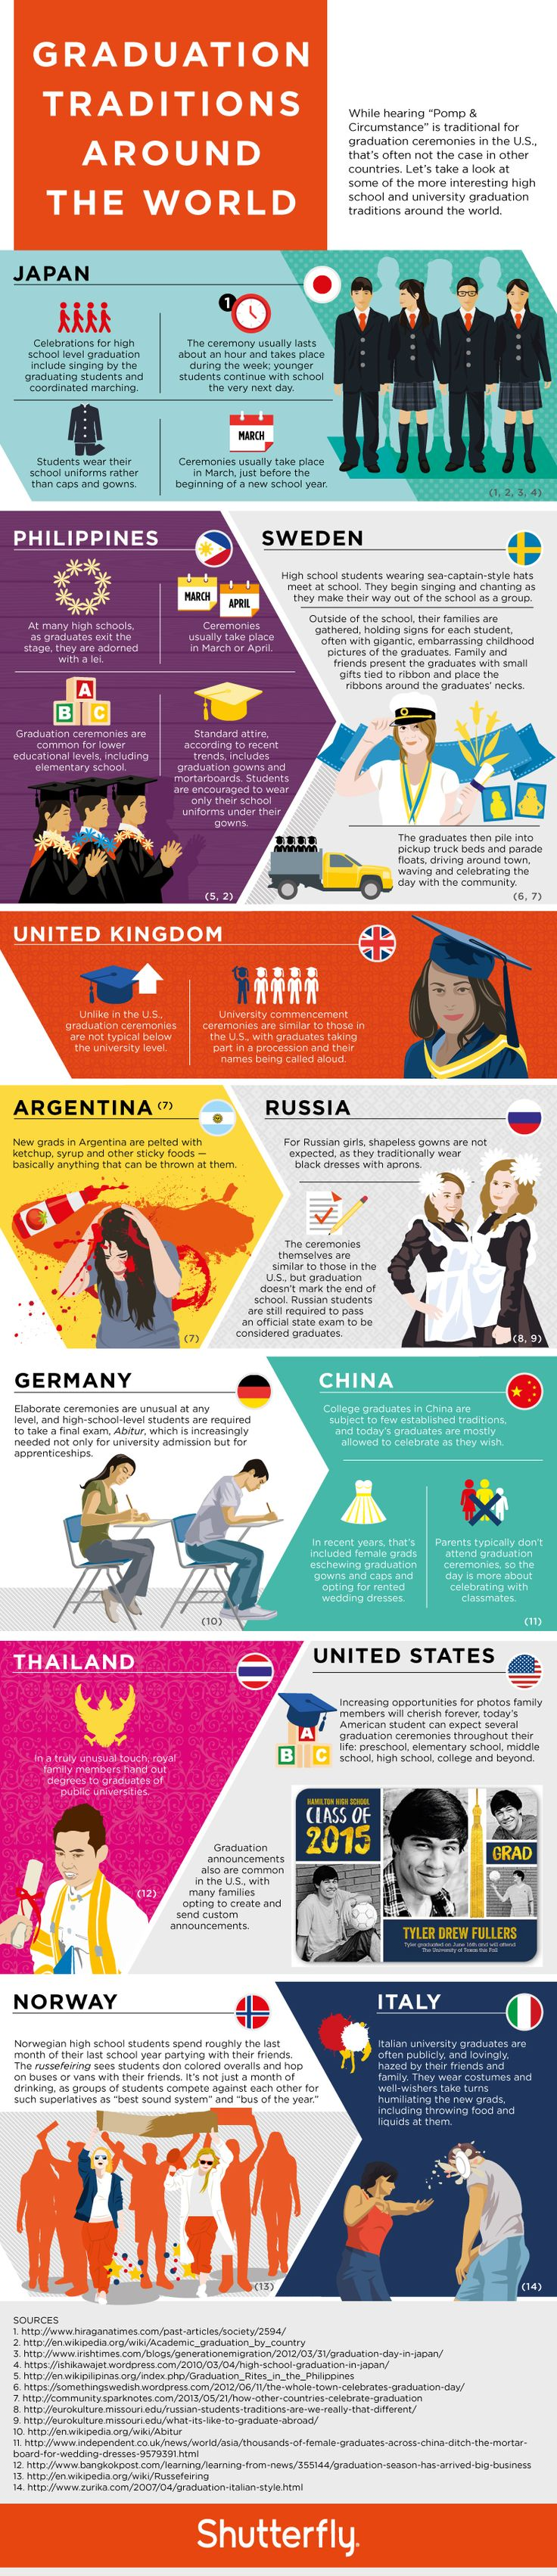 How fun is this?  Useless information but fun.  #Graduation traditions around the world #Infographic